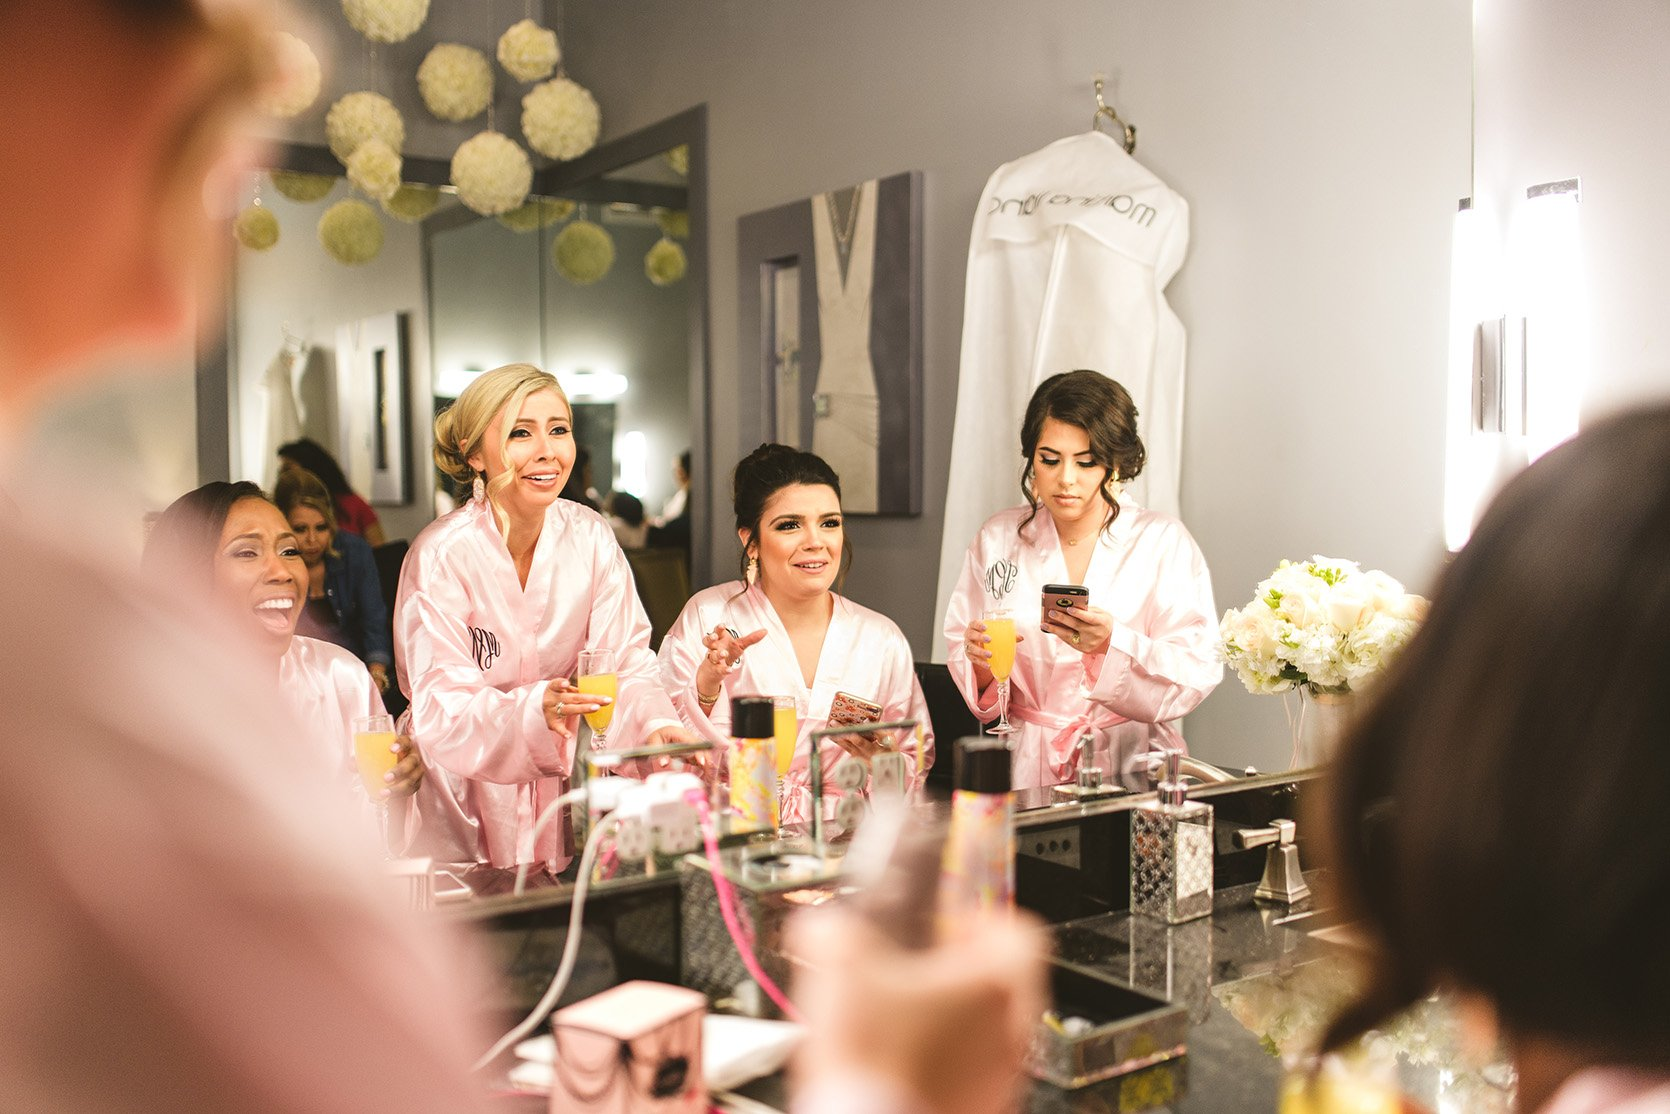 houston wedding, bridal party, getting ready, bridesmaids